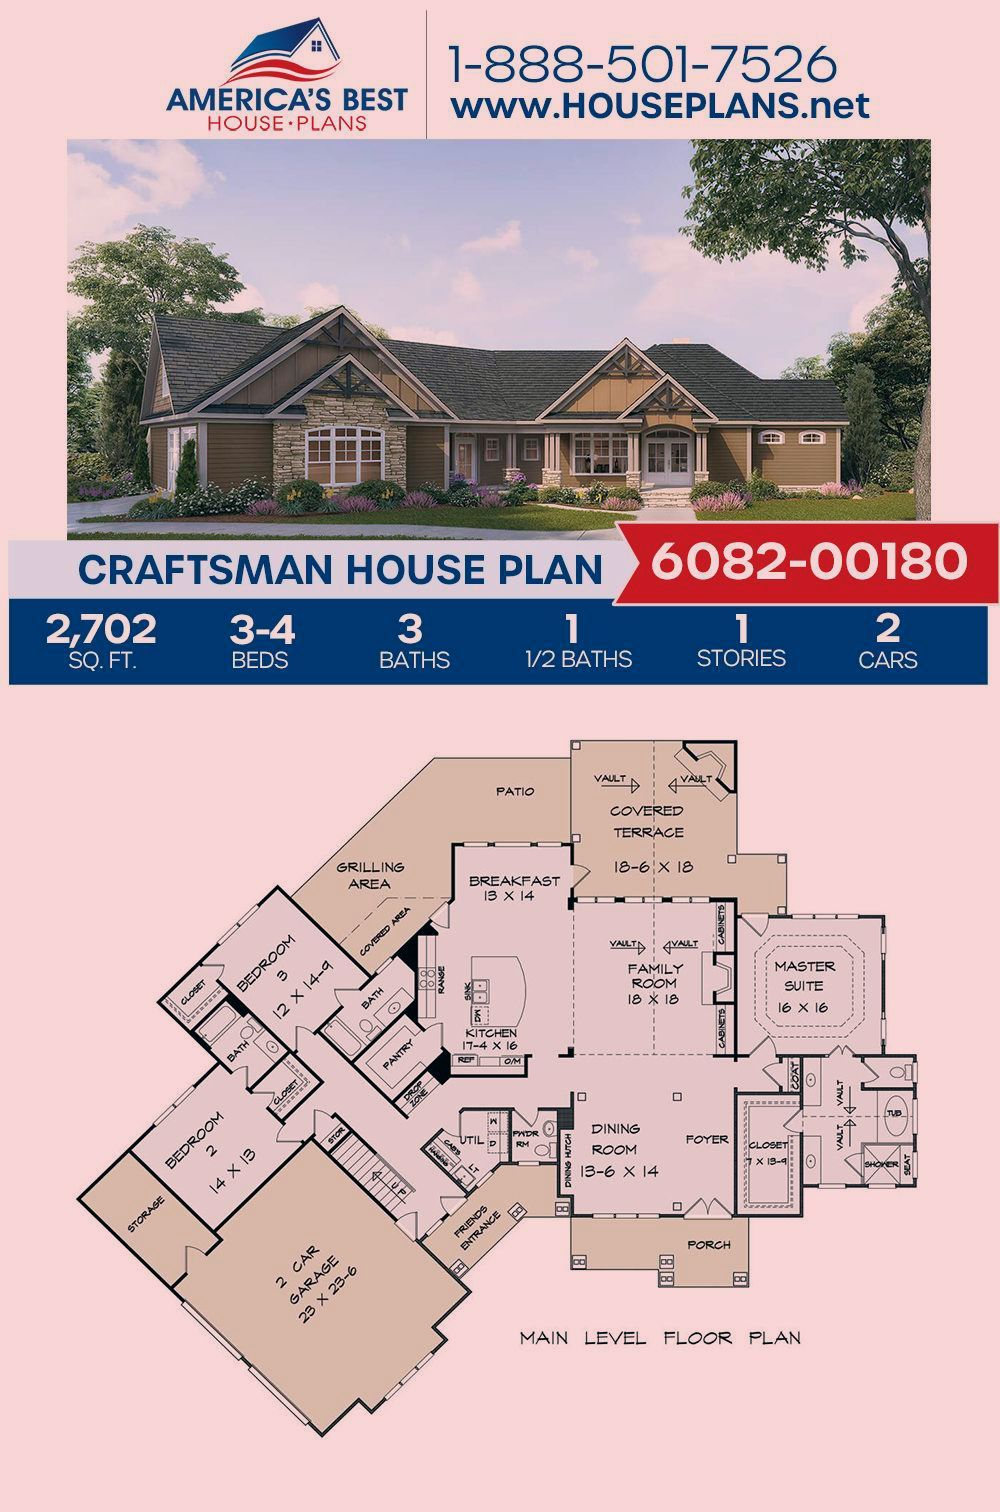 A Beautiful 1 Story Craftsman Home Design And A Family Centered Outdoor Living Area Plan 6082 00180 In 2020 Craftsman House Plan Craftsman House Plans Craftsman House